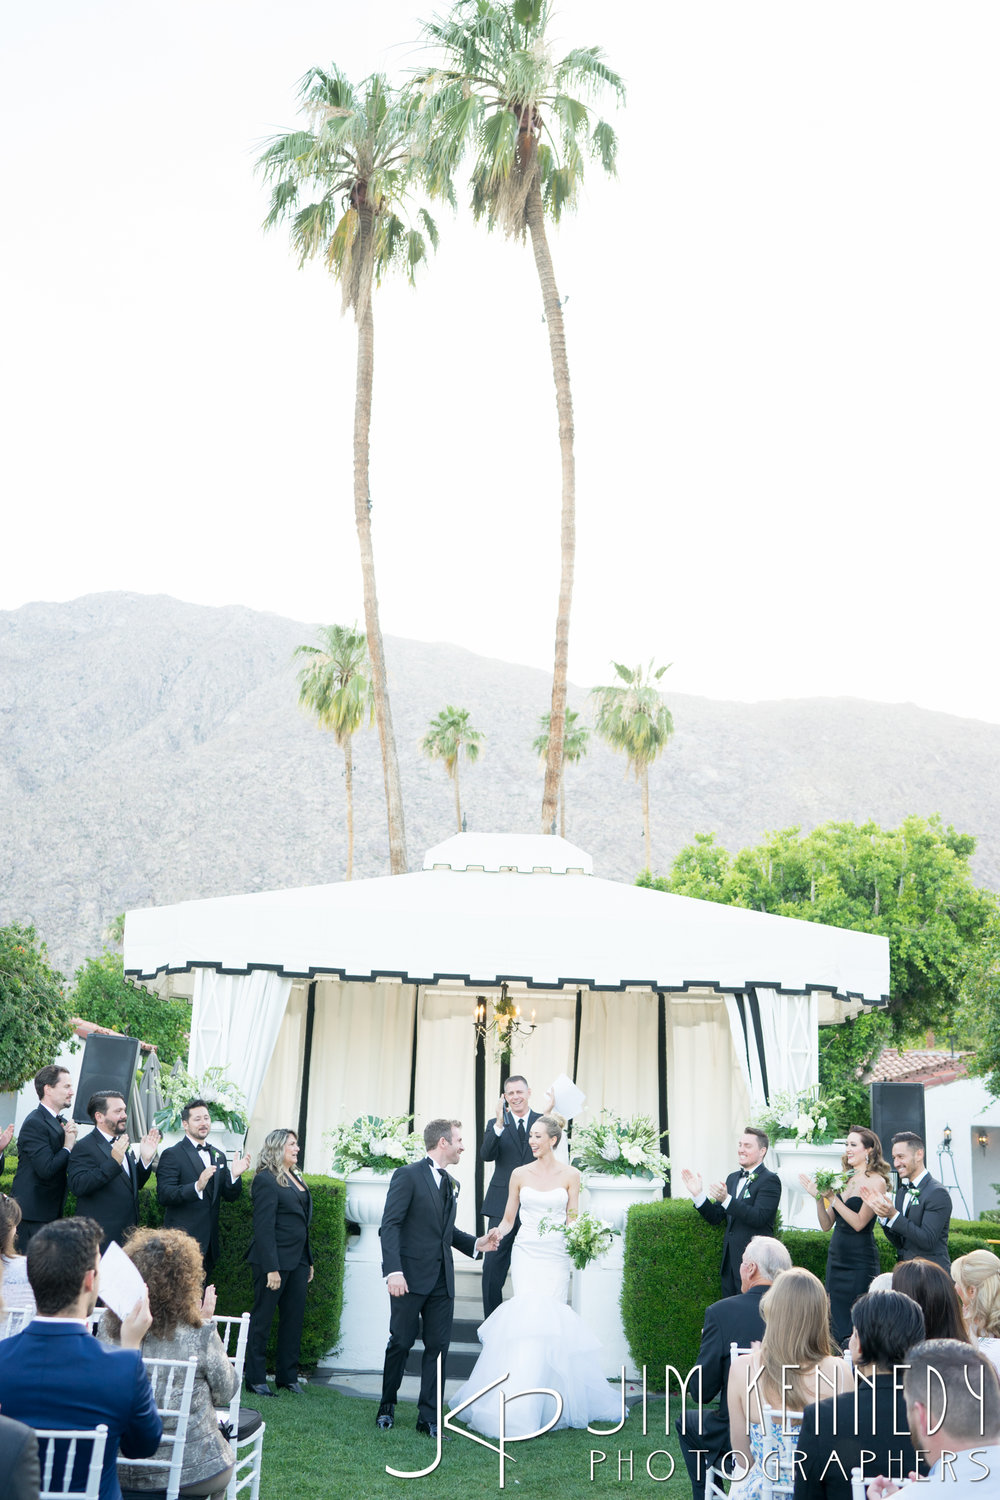 palm-springs-wedding-jim-kennedy-photographers_0204.JPG